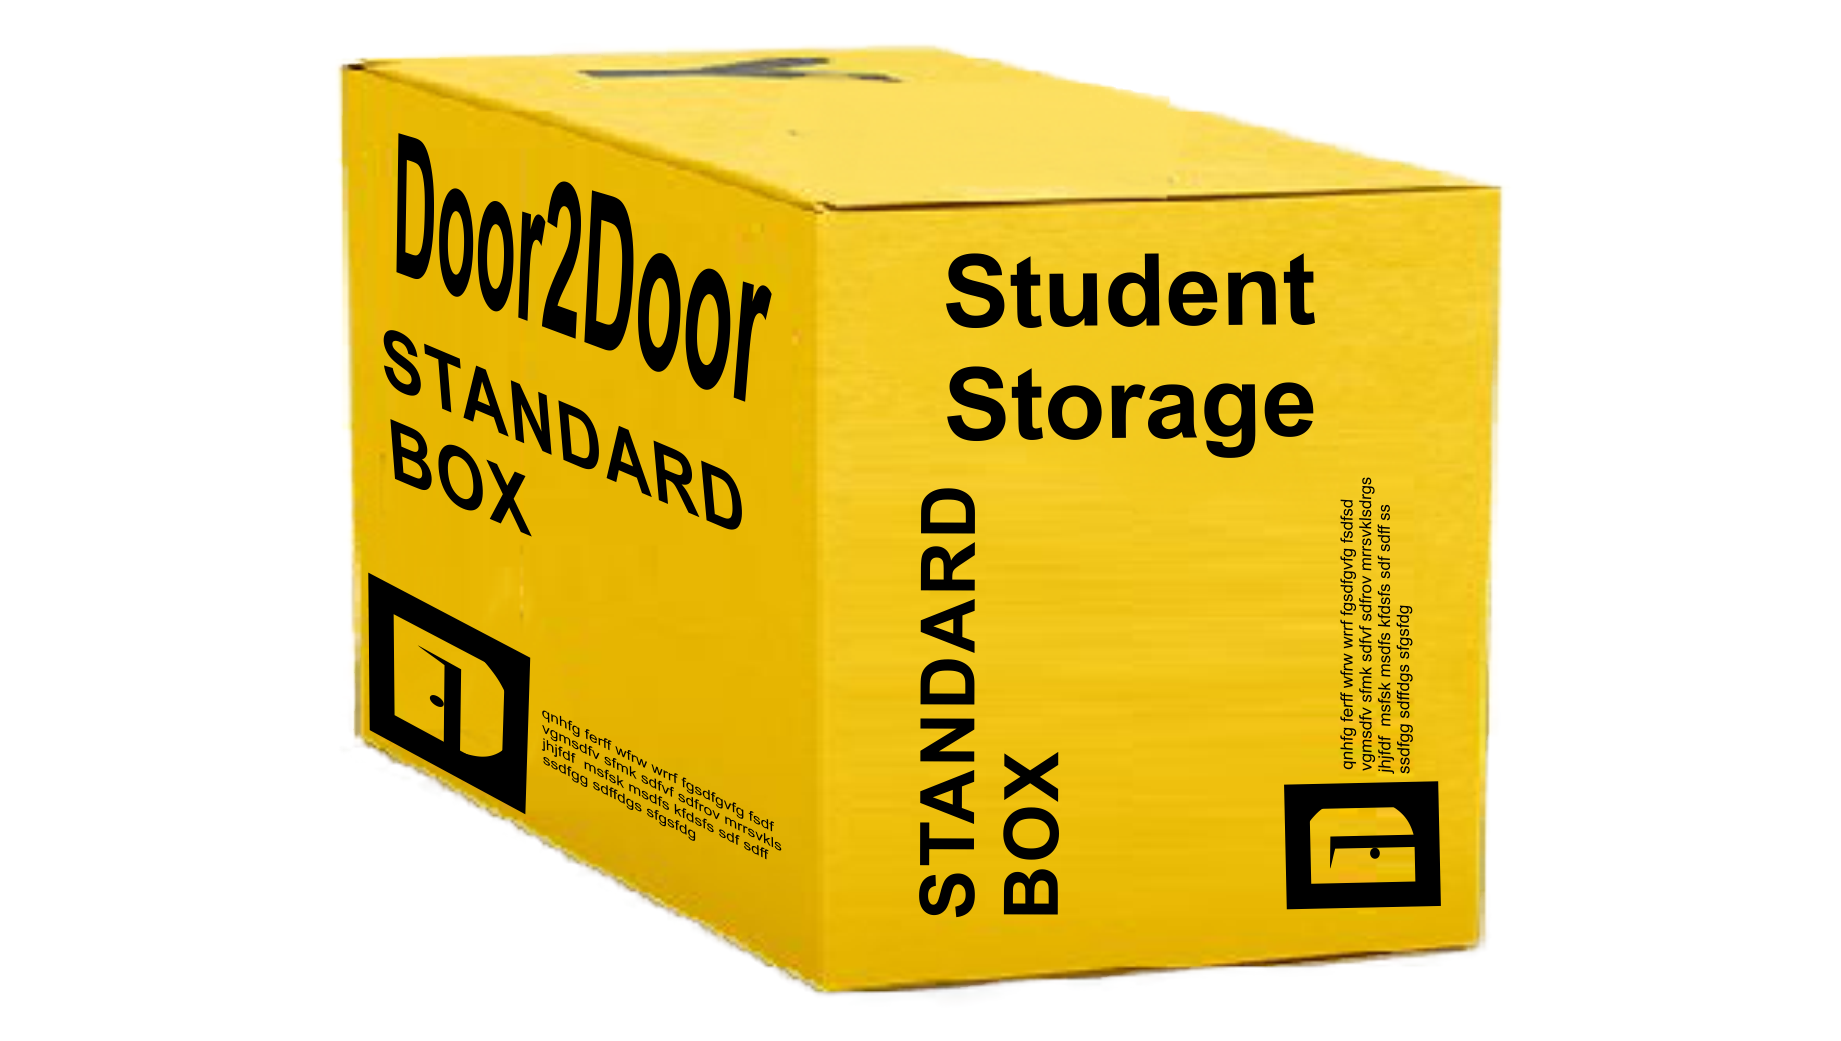 Door2Door Student Storage Standard Box